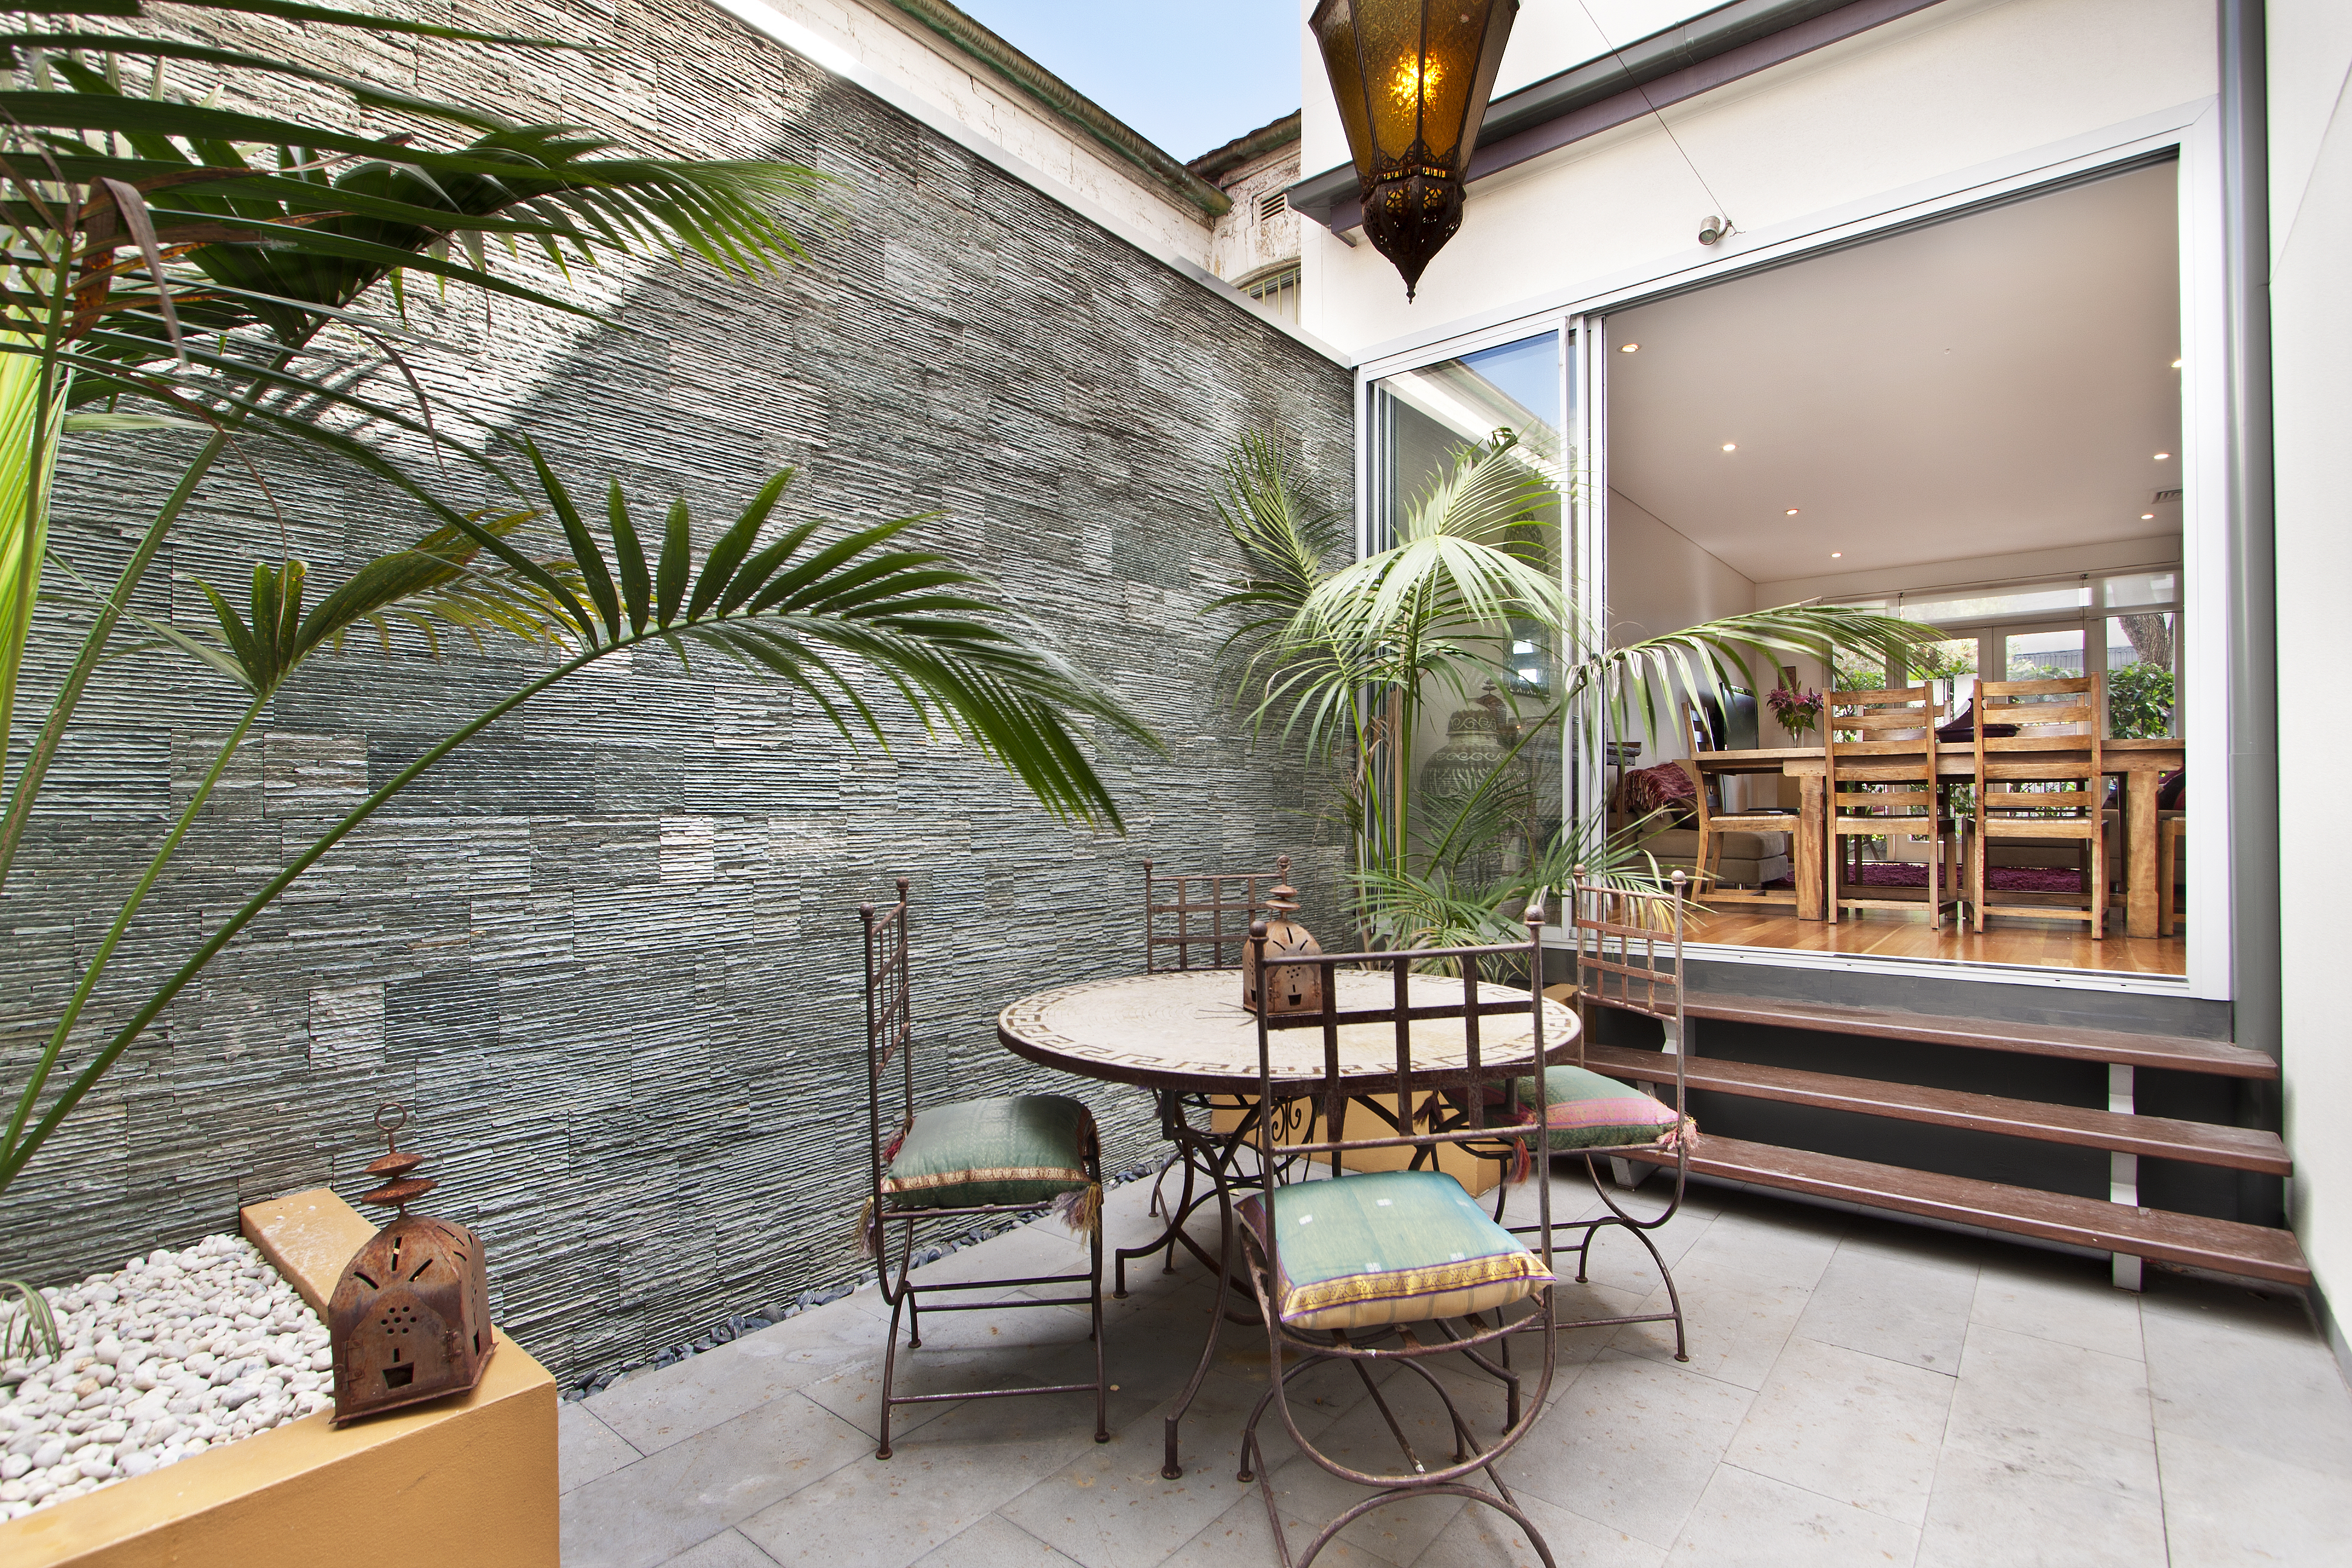 Best Outdoor Tile Options Different Types Of Outdoor Tiles Builddirectbuilddirect Blog Life At Home